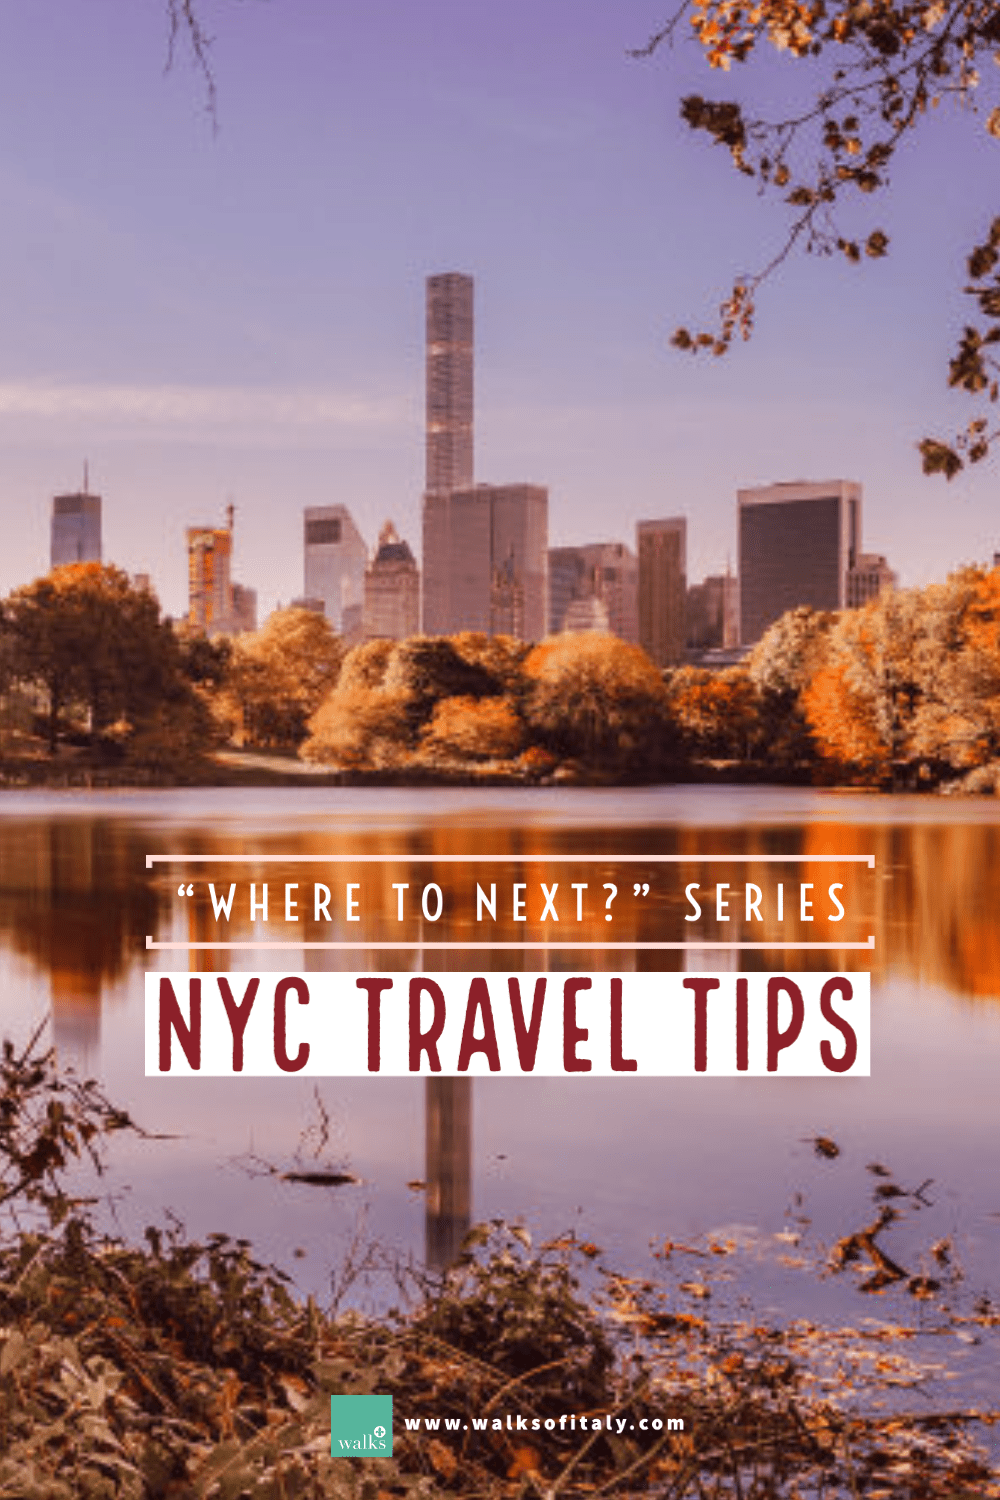 NYC Travel Tips by Margherita Ragg